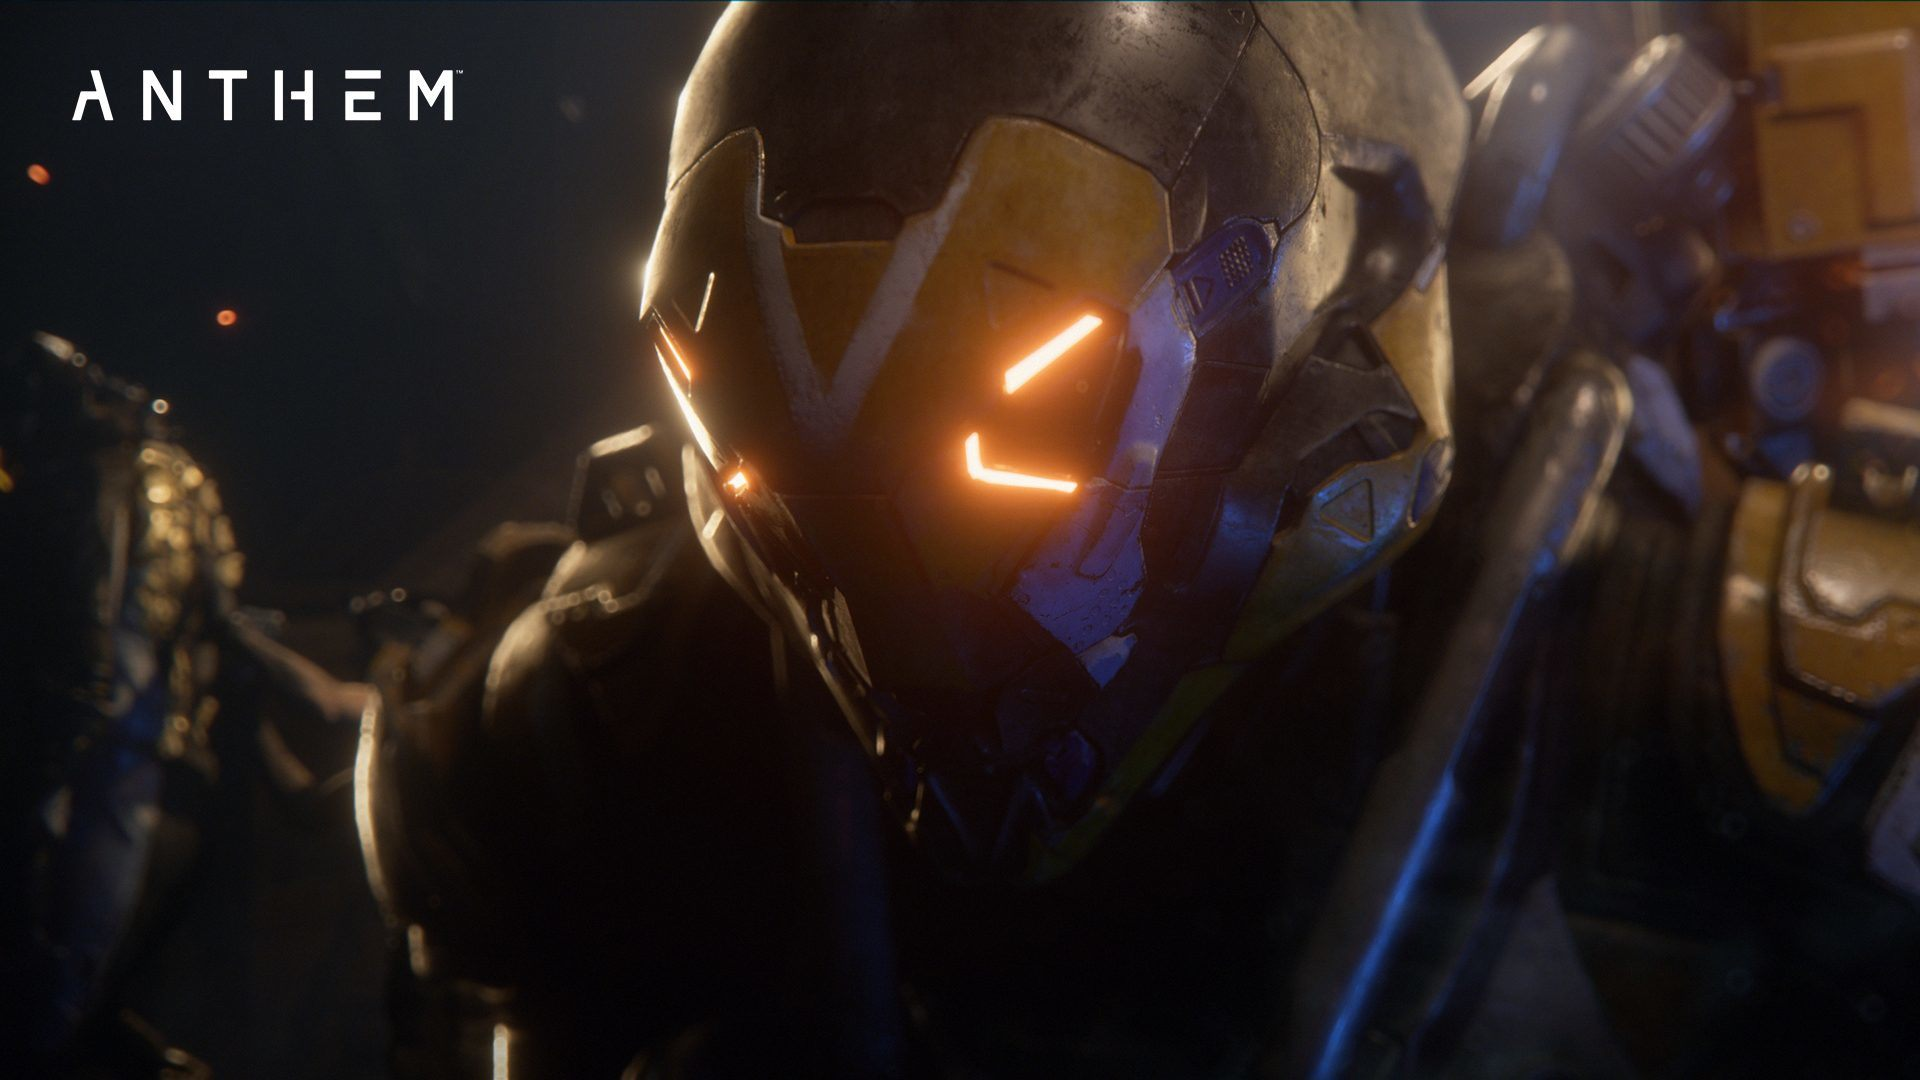 anthem official teaser trailer.jpg.adapt .crop16x9.1920w